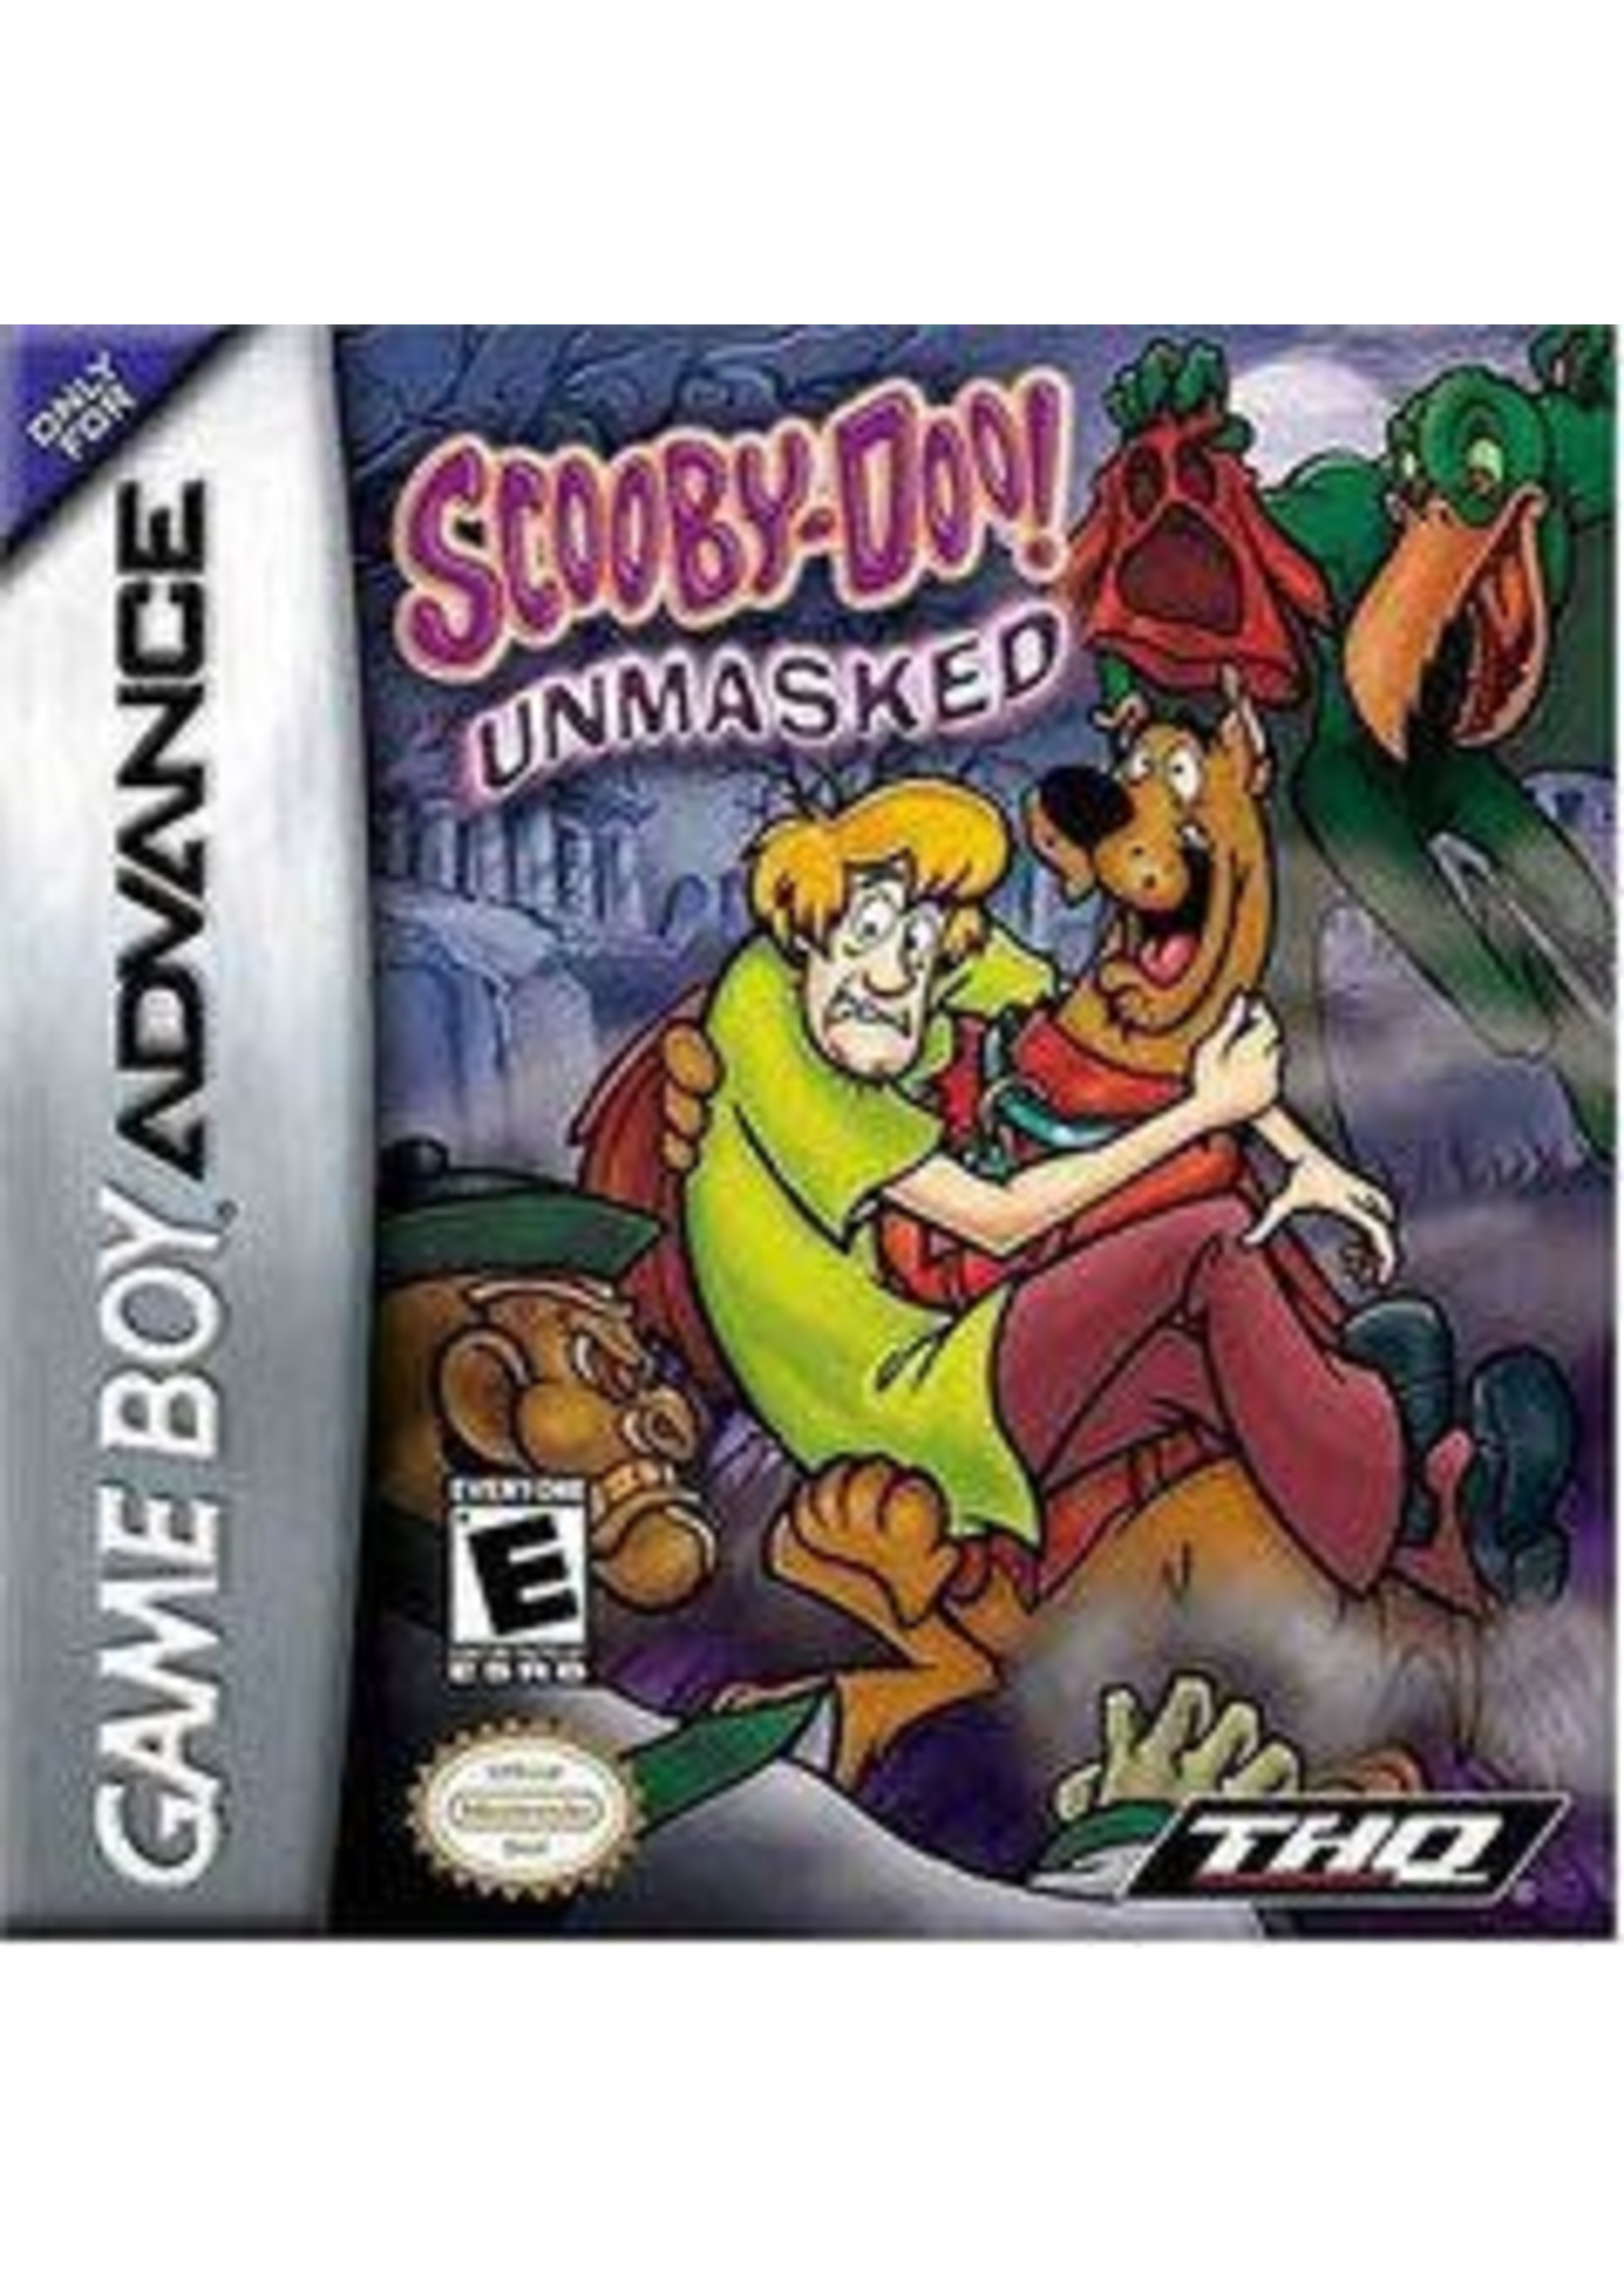 Scooby Doo Unmasked GameBoy Advance